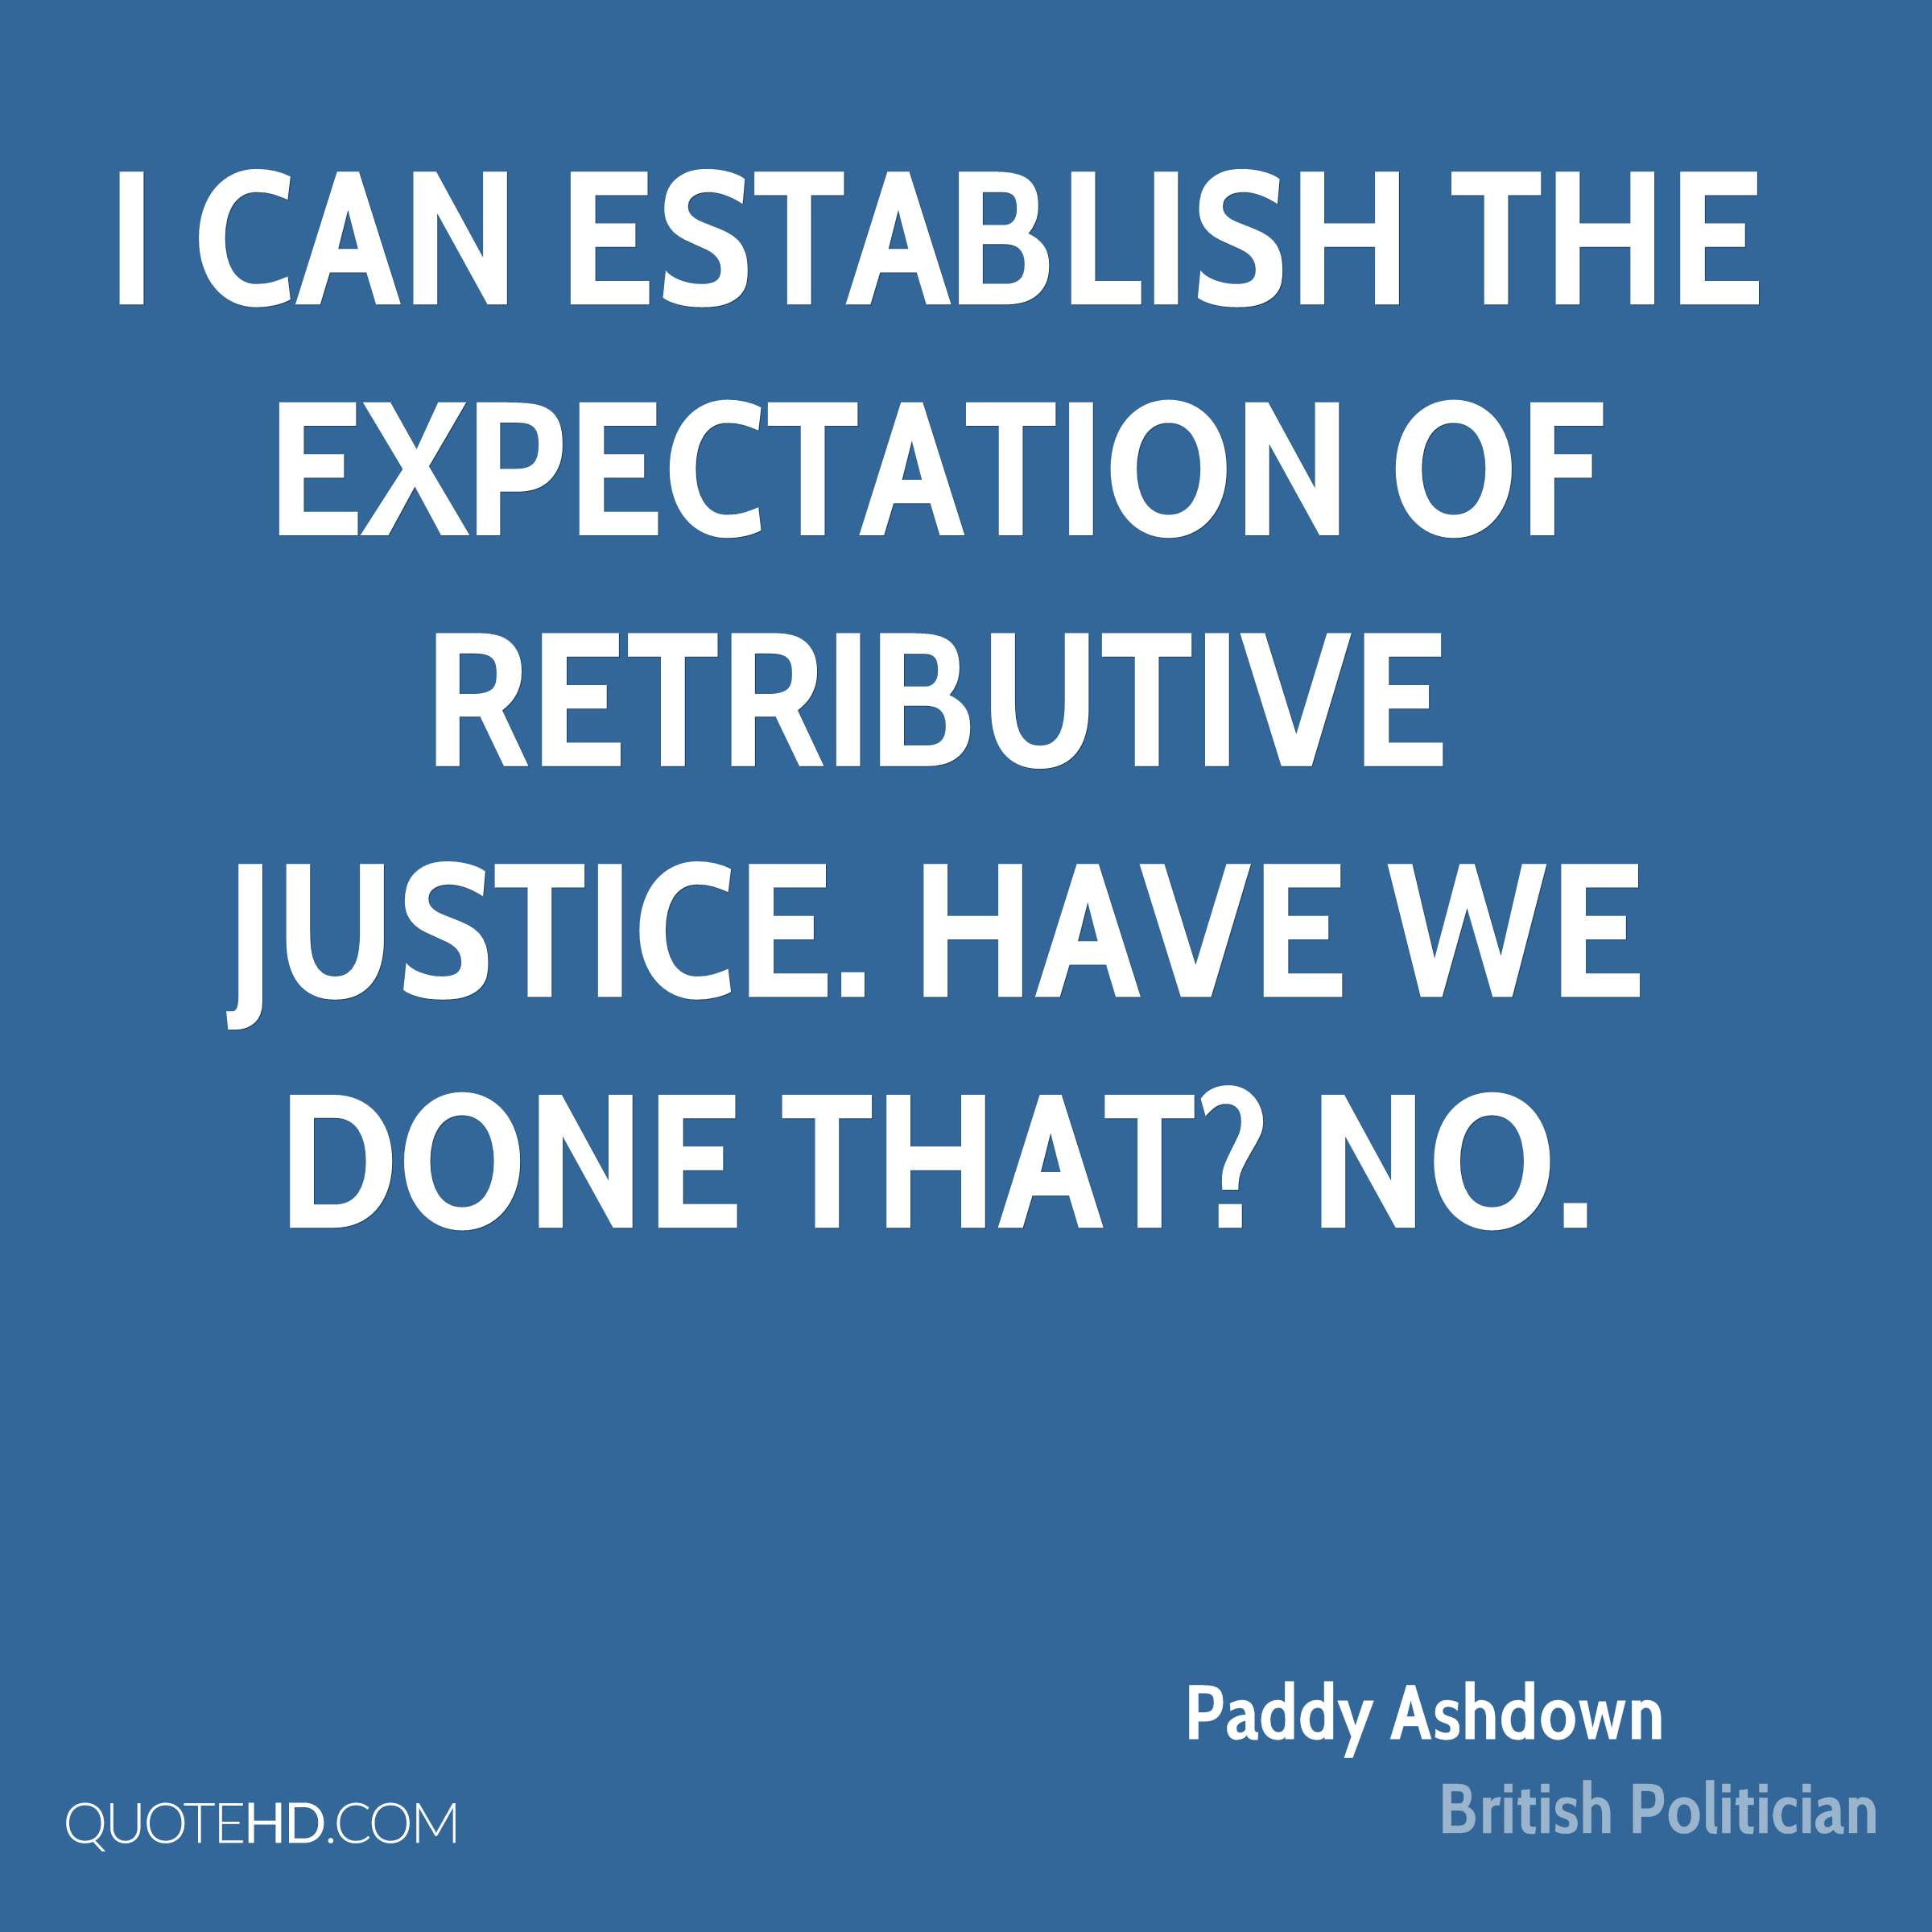 I can establish the expectation of retributive justice. Have we done that? No.